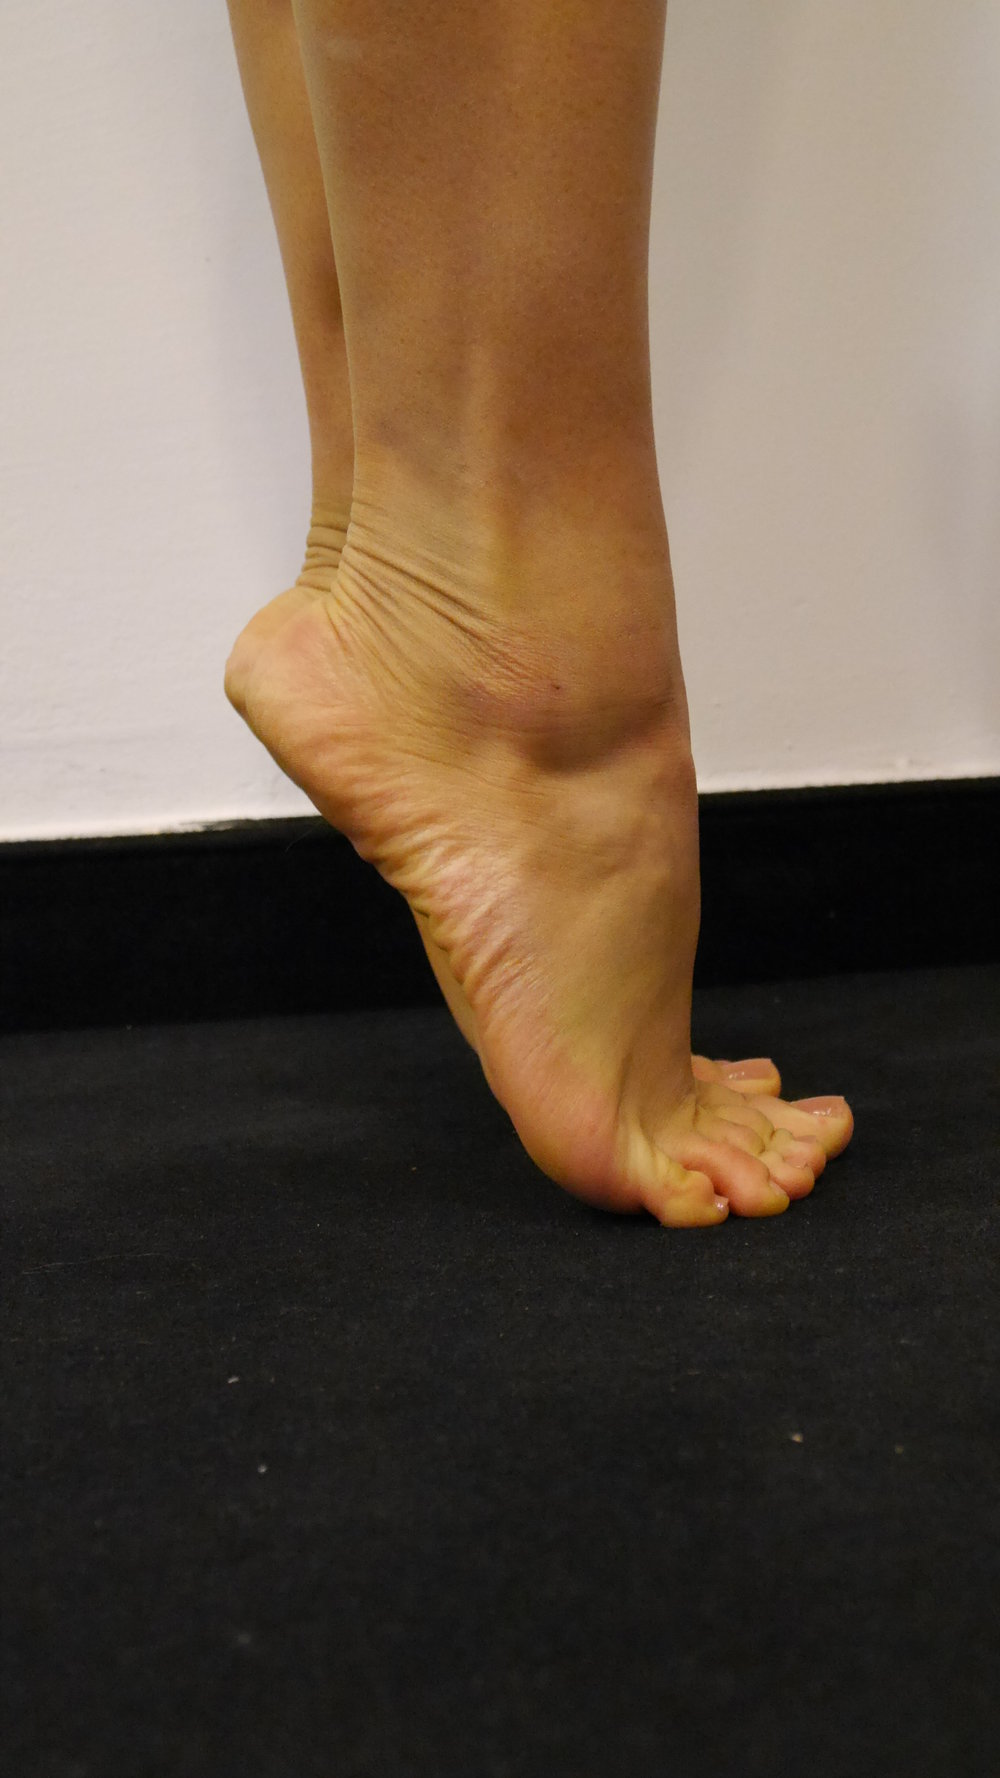 Foot Strengthening Exercises - The 5 Best Ones!